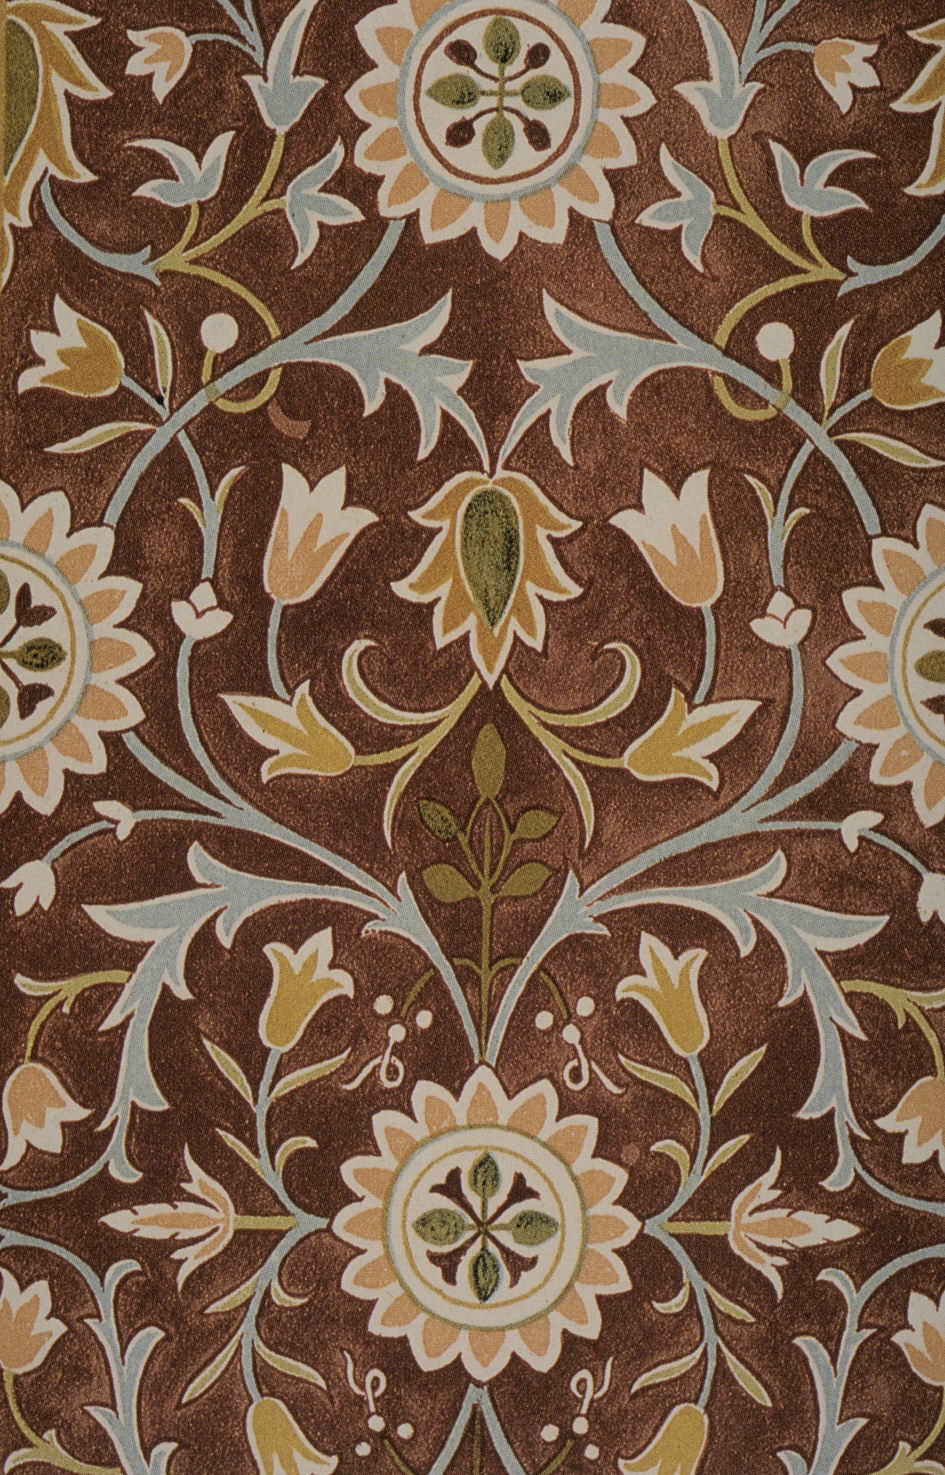 Carpet Design Fair Filemorris Little Flower Carpet Design Detail  Wikimedia Commons Decorating Inspiration